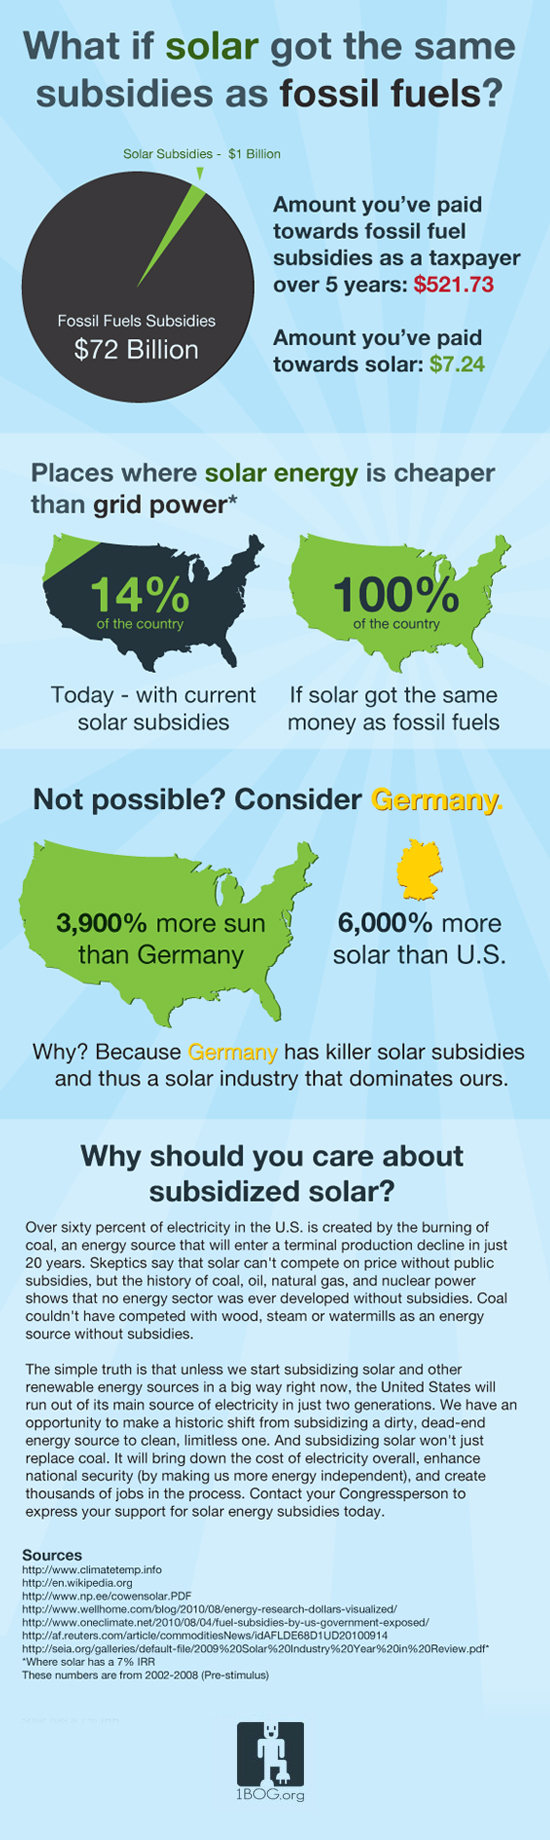 Solar Energy subsidized like Fossil Fuels